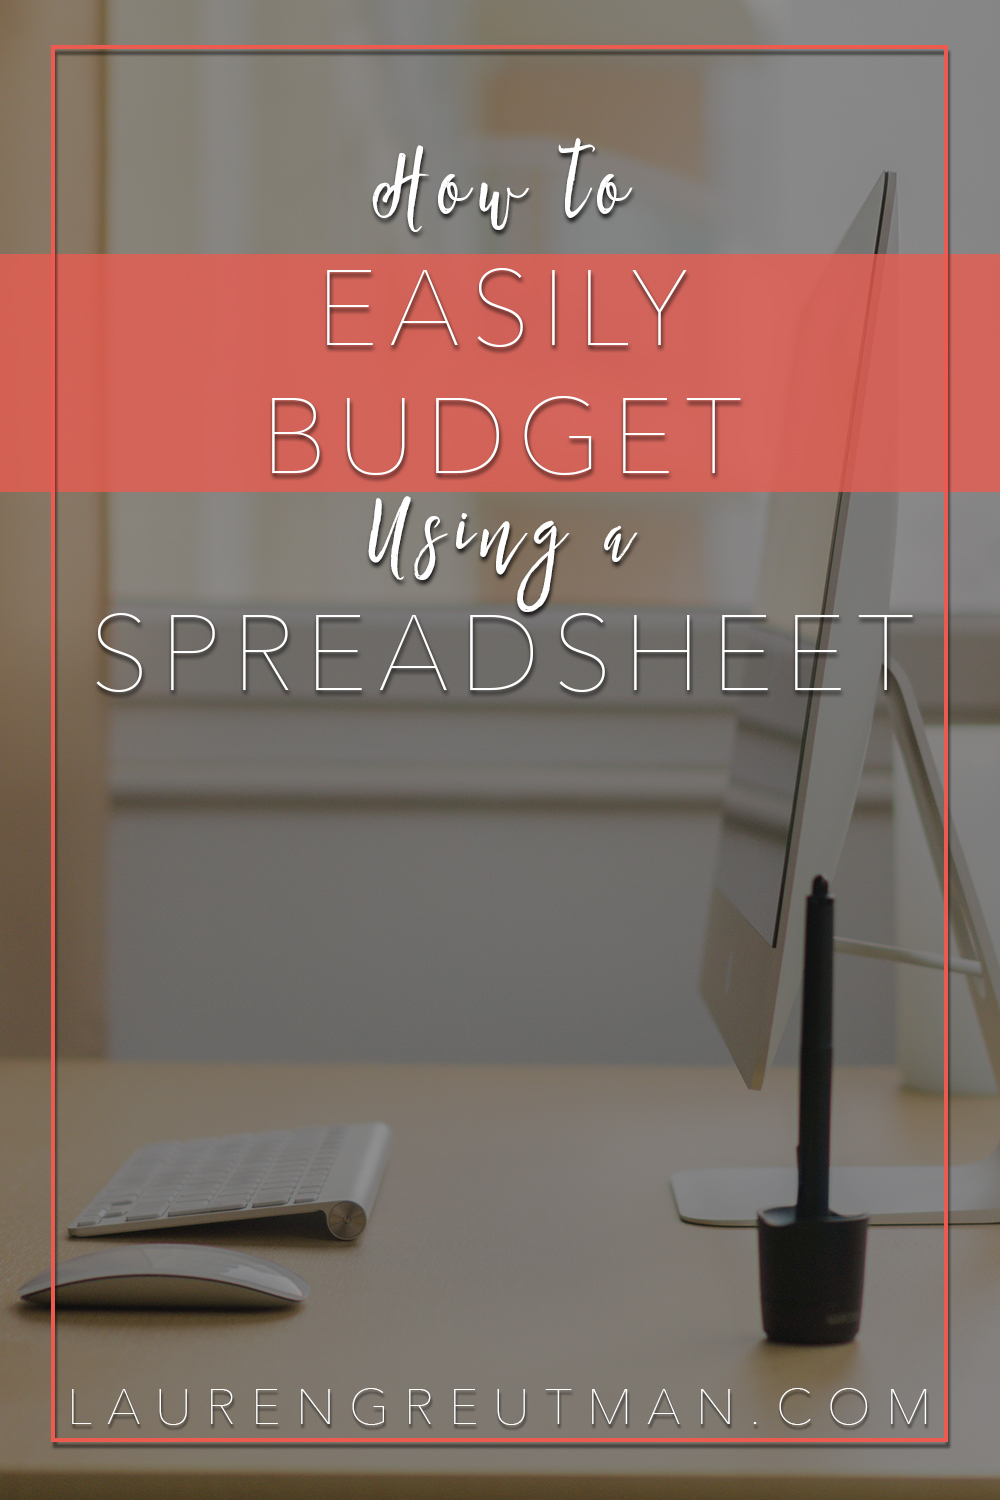 Budgeting using a spreadsheet is simply the best way to go - and this new tool will feed your transactions directly into the spreadsheet!